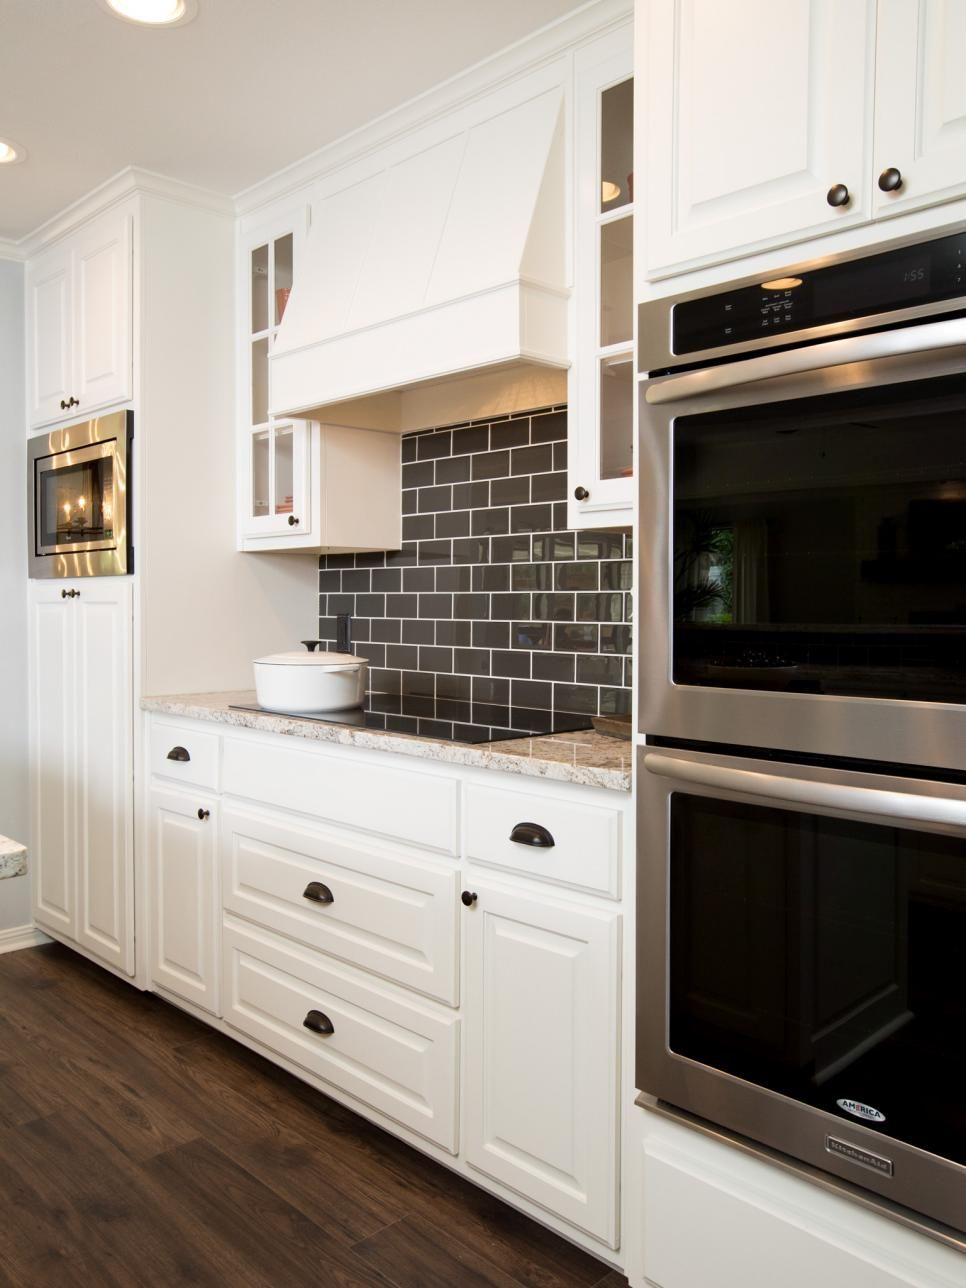 Kitchen detail after the new vent hood is wrapped in wood and painted white to match cabinetry backsplash charcoal gray glass tile also fixer upper  rush renovate an   ranch home pinterest